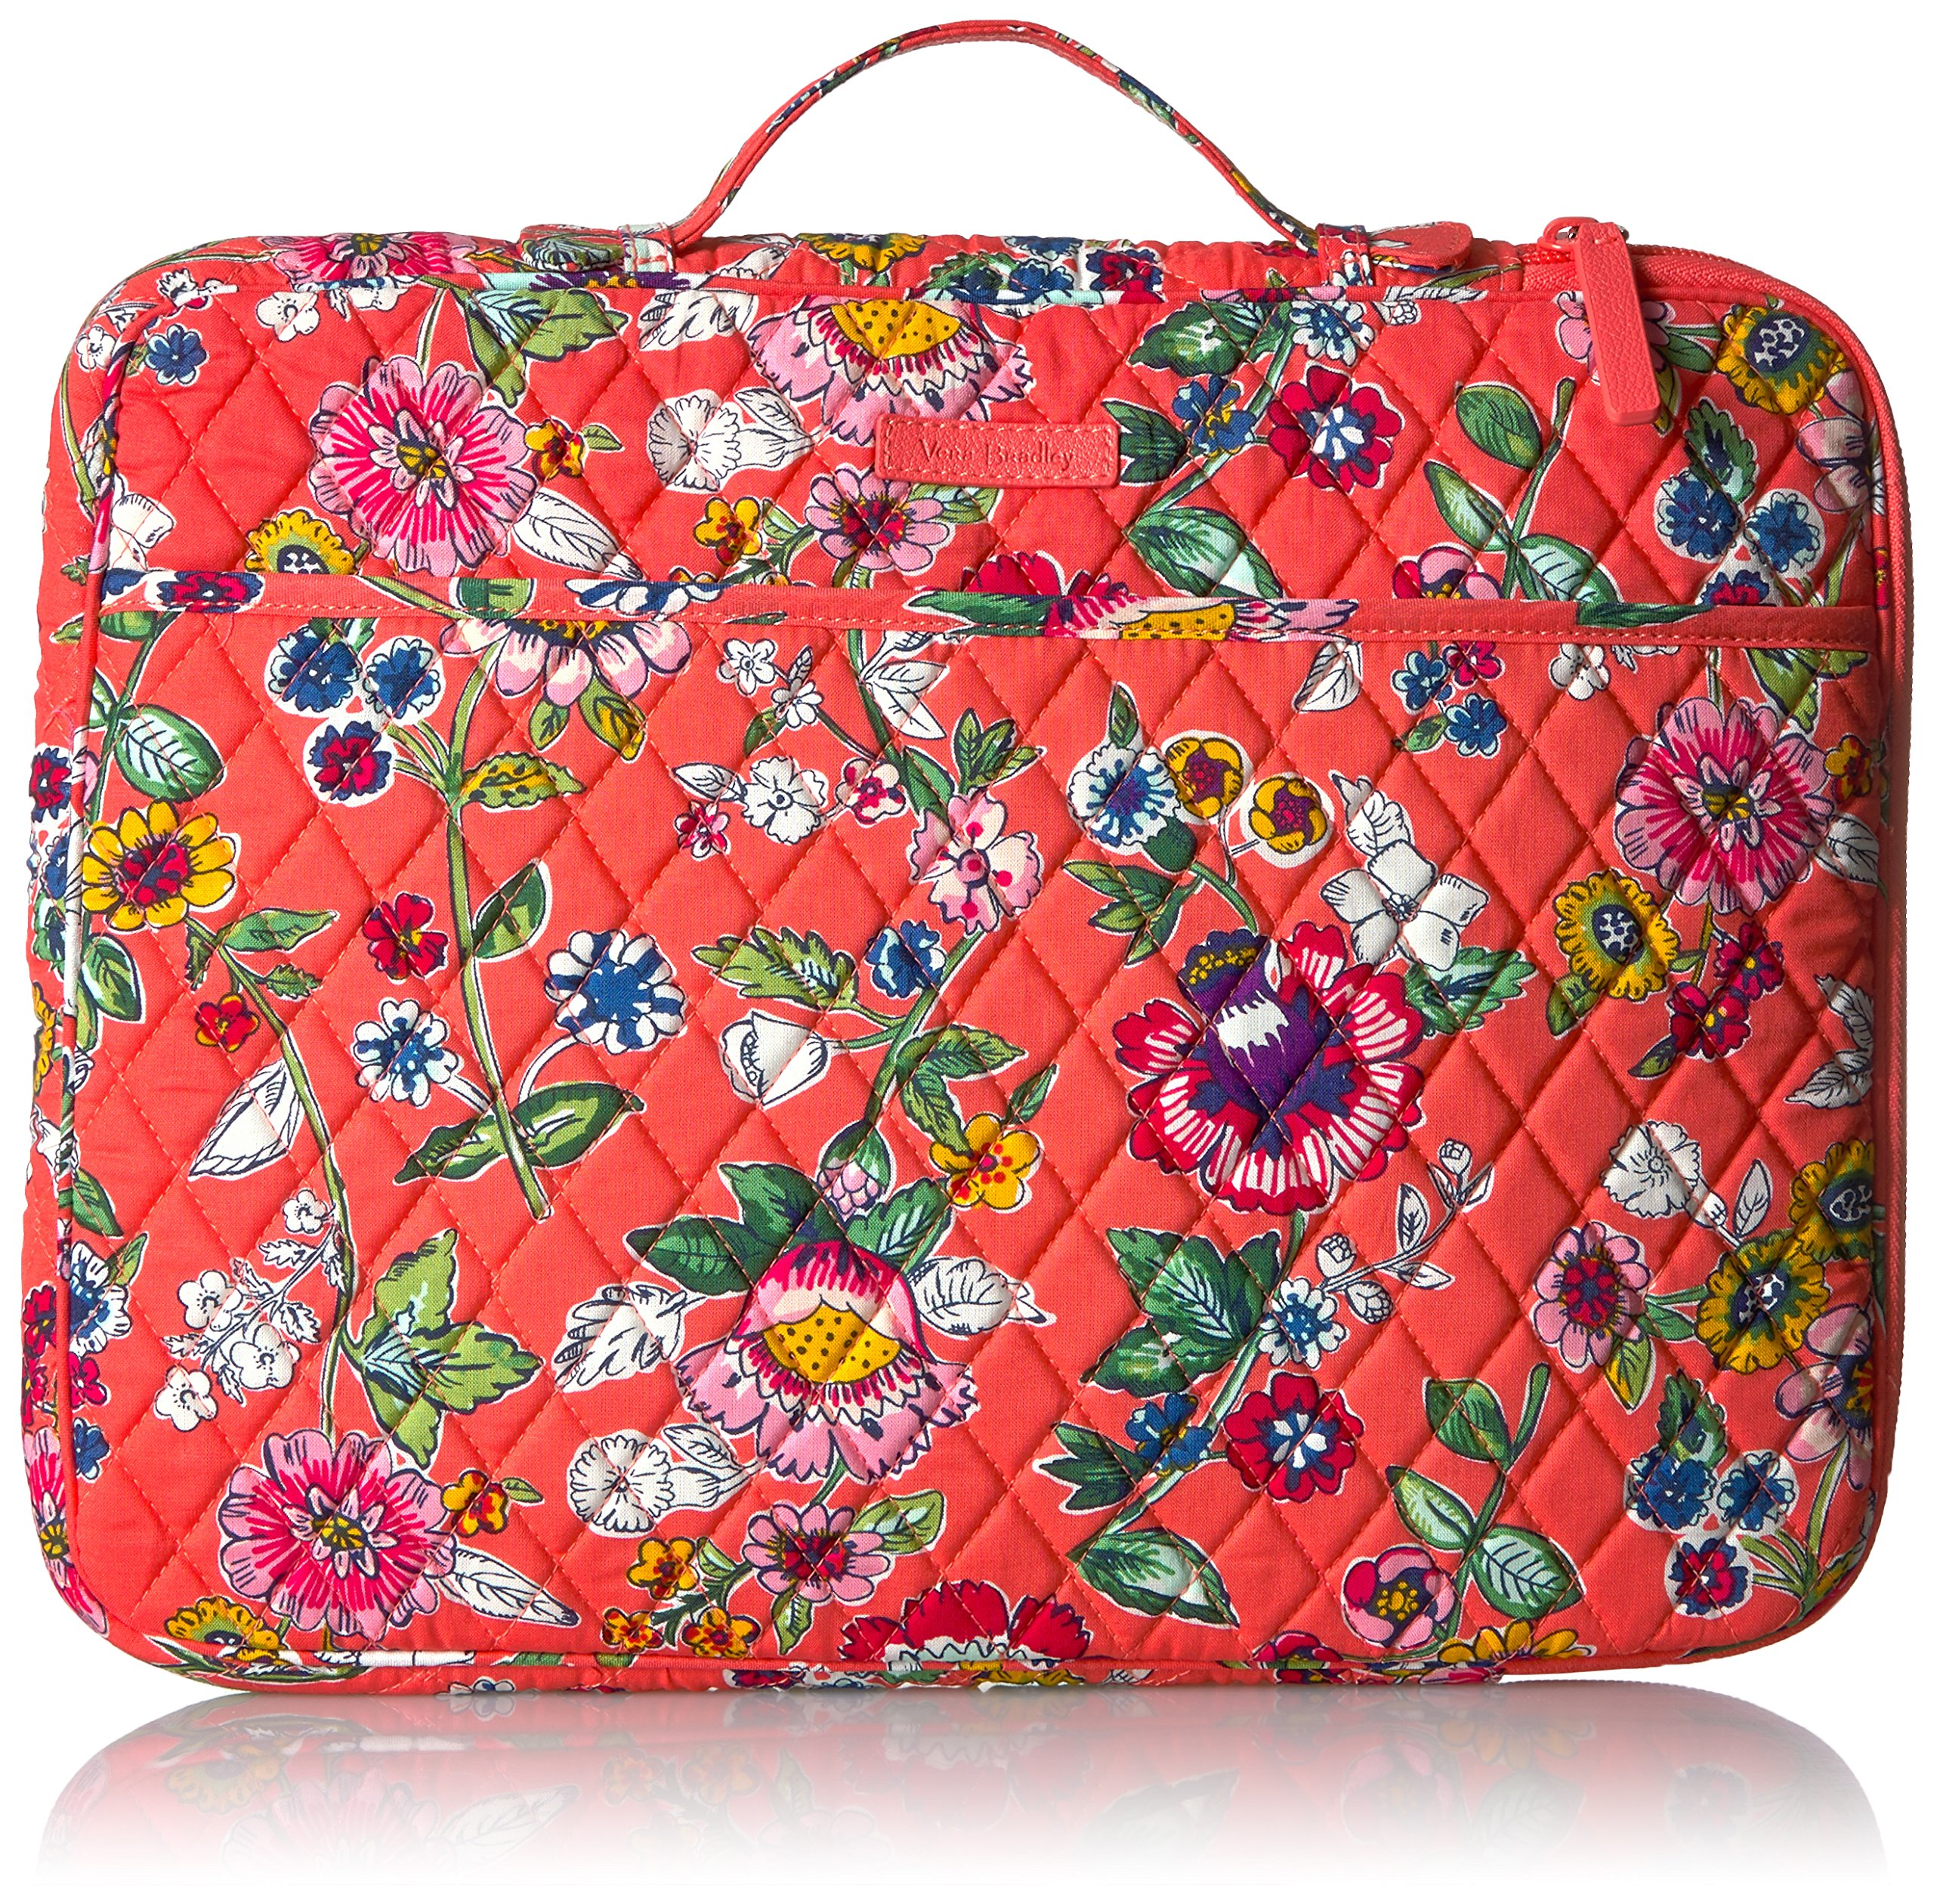 Laptop Organizer - Signature Messenger Bag Bag, Coral Floral, One Size by Vera Bradley (Image #1)